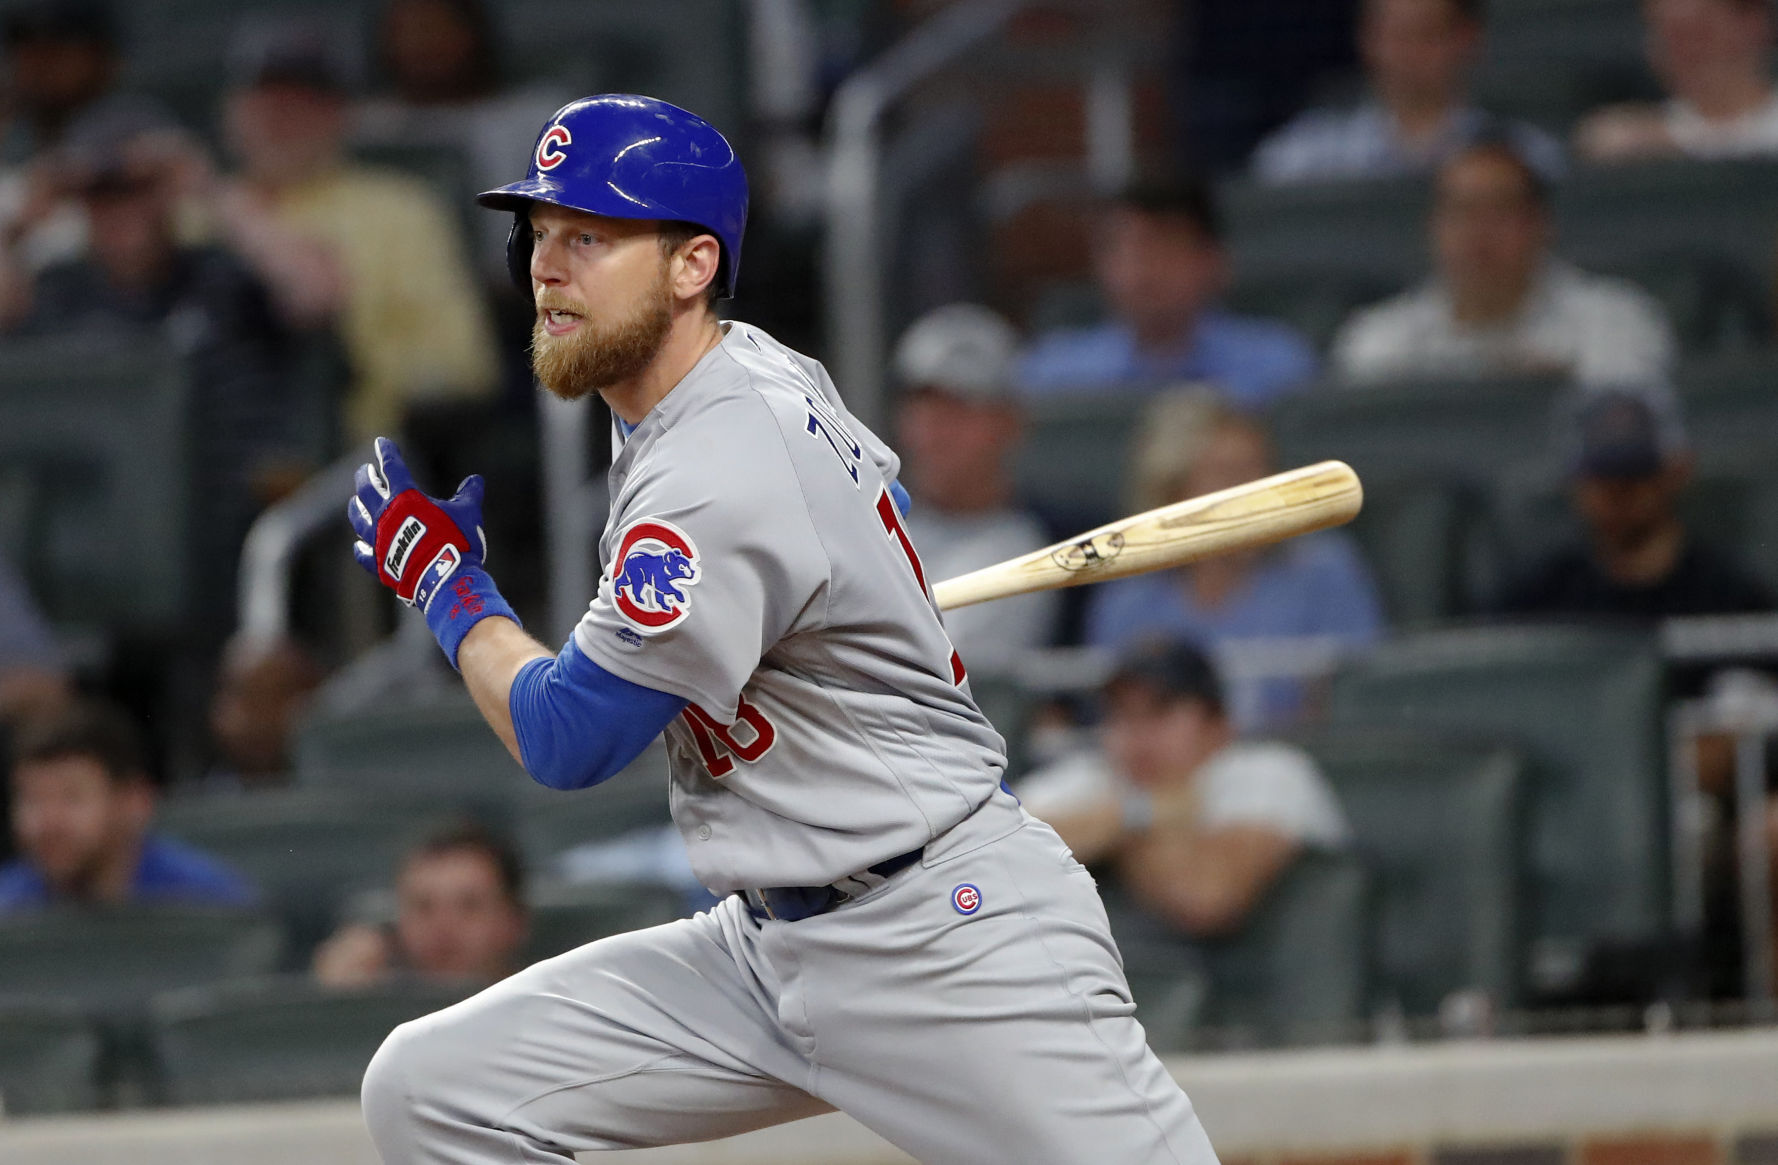 Ex-Cubs star Ben Zobrist claims wife Julianna had affair with ...